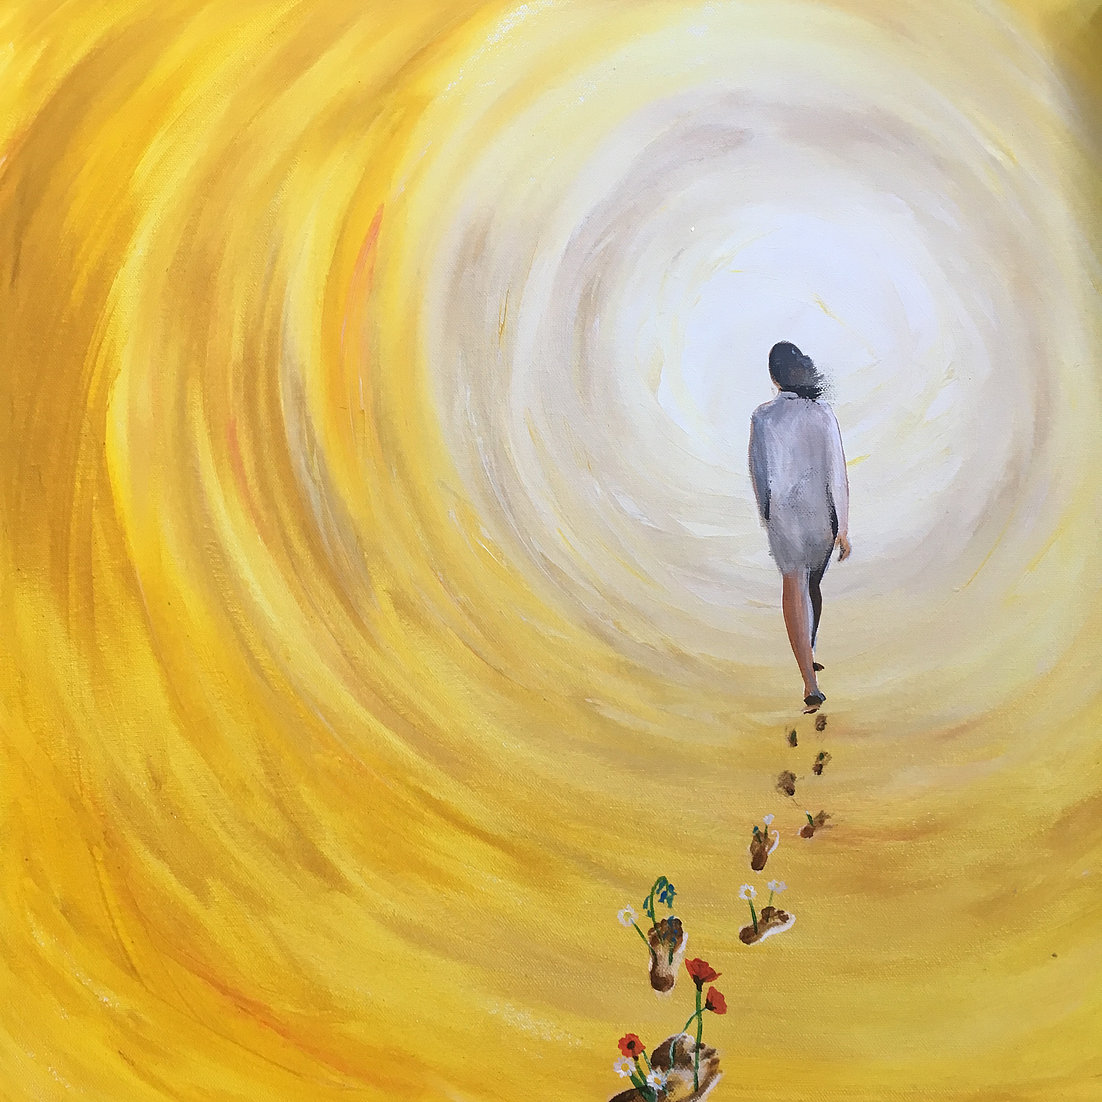 Painting of woman walking away towards light, surrounded by yellow hues. Flowers are growing out of her footprints. Art by Helen Yousaf.